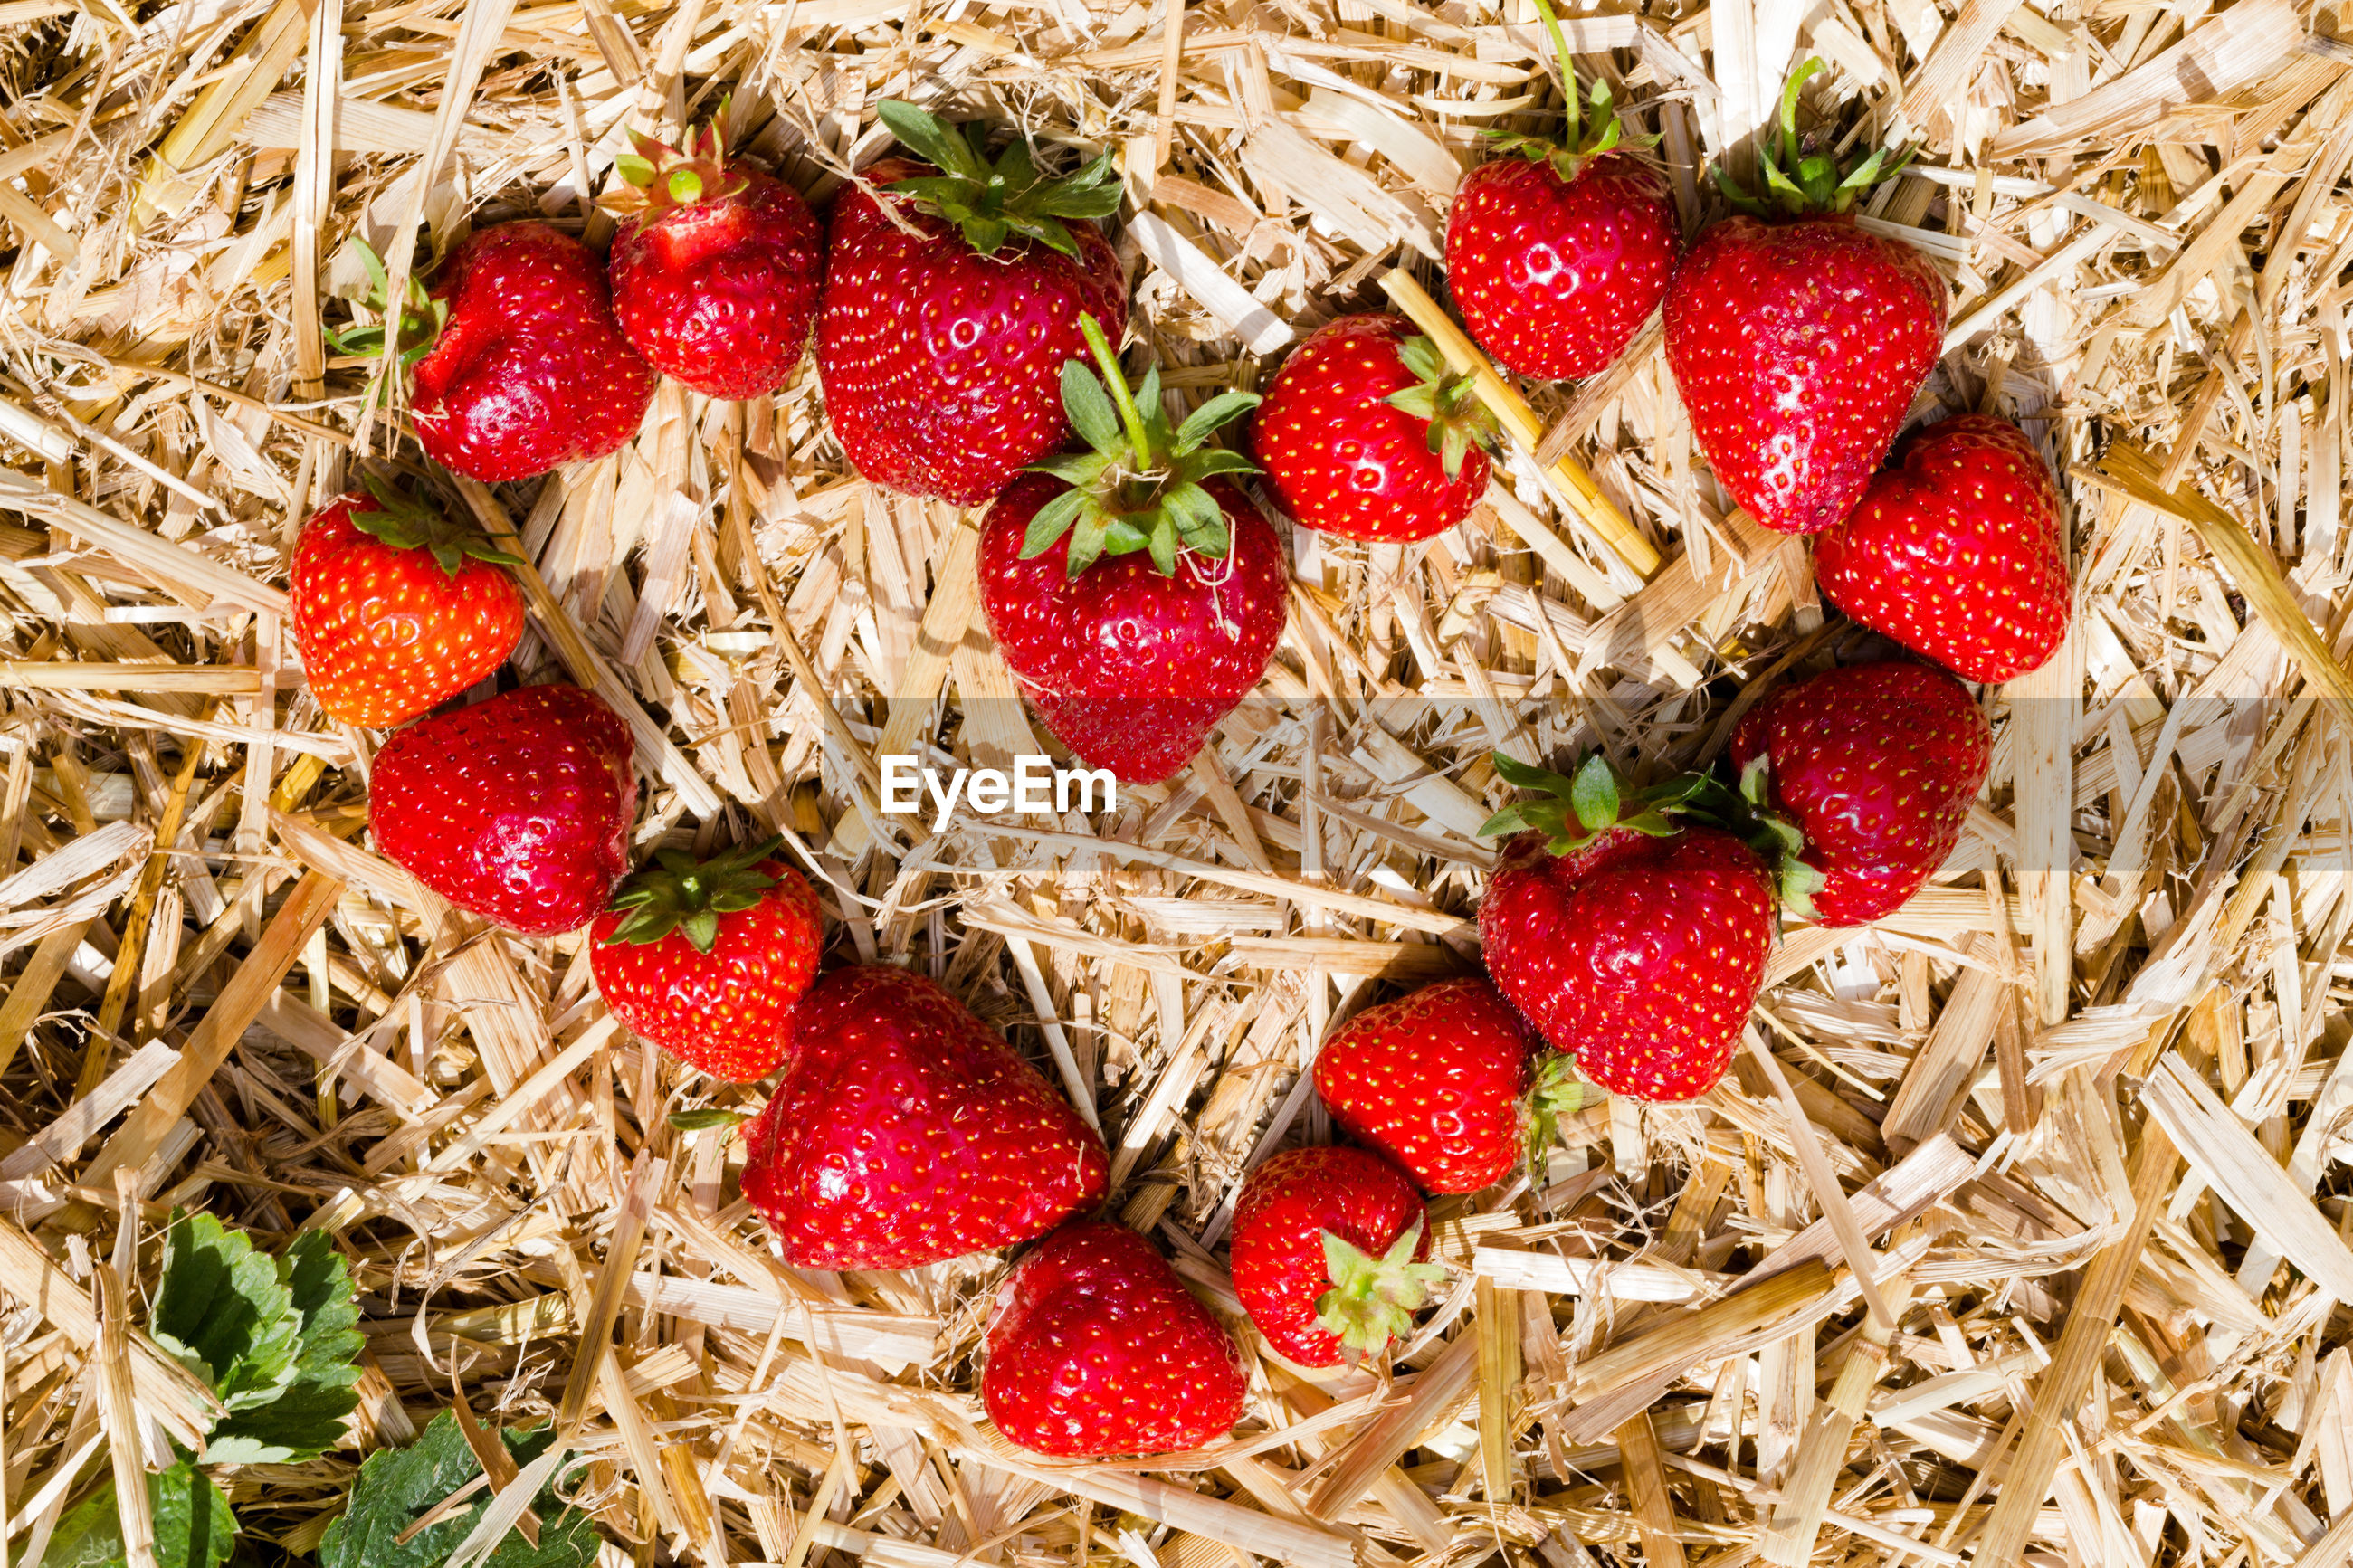 Directly above shot of strawberries